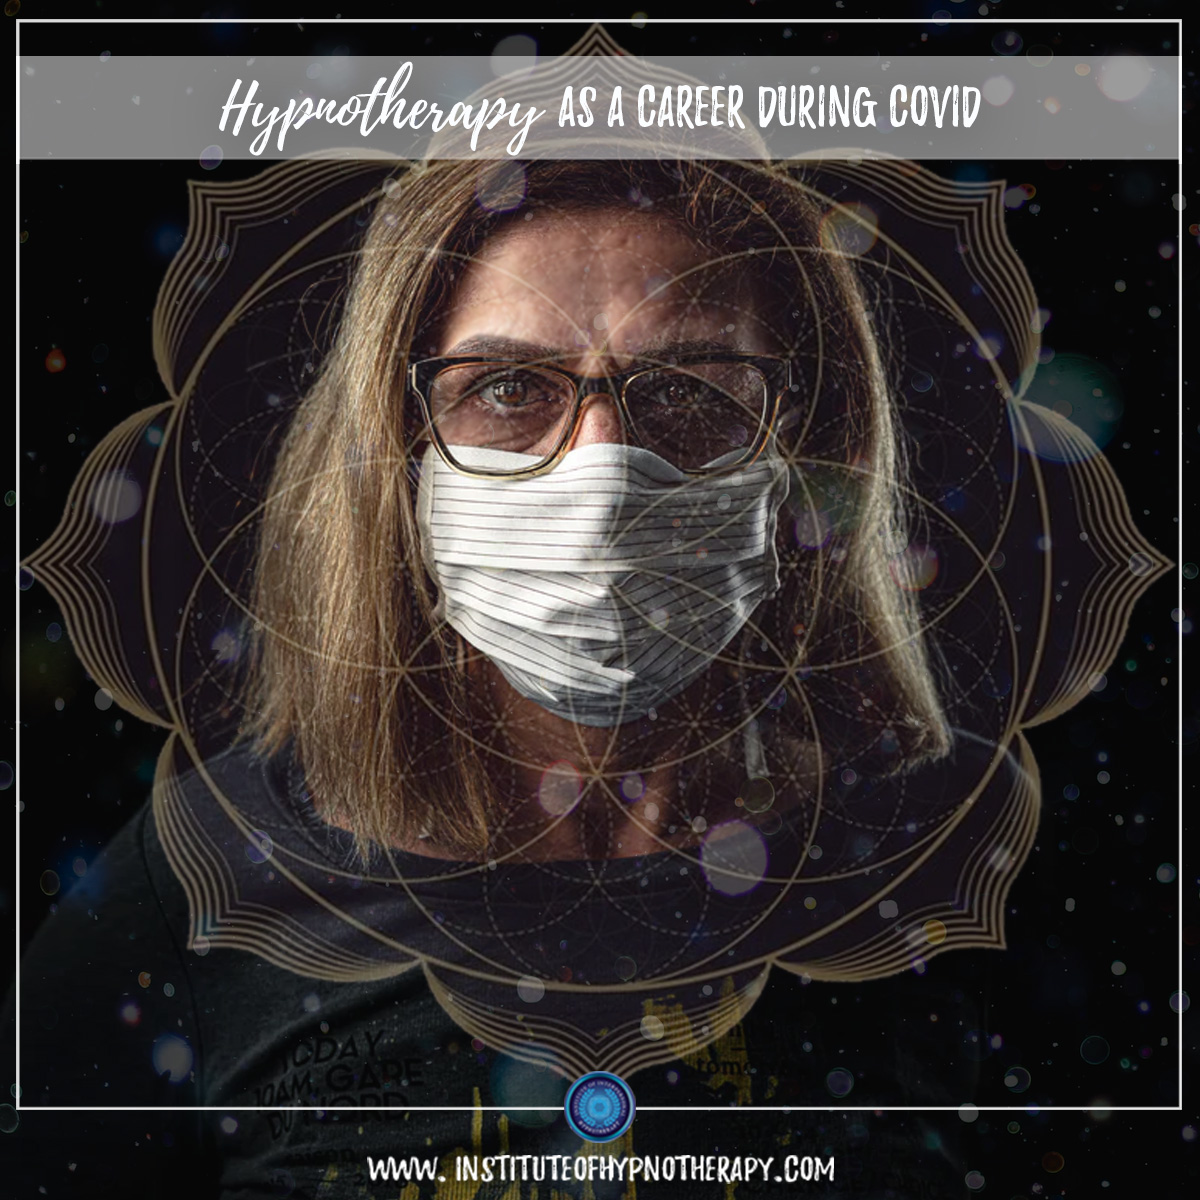 Hypnotherapy as a Career During COVID